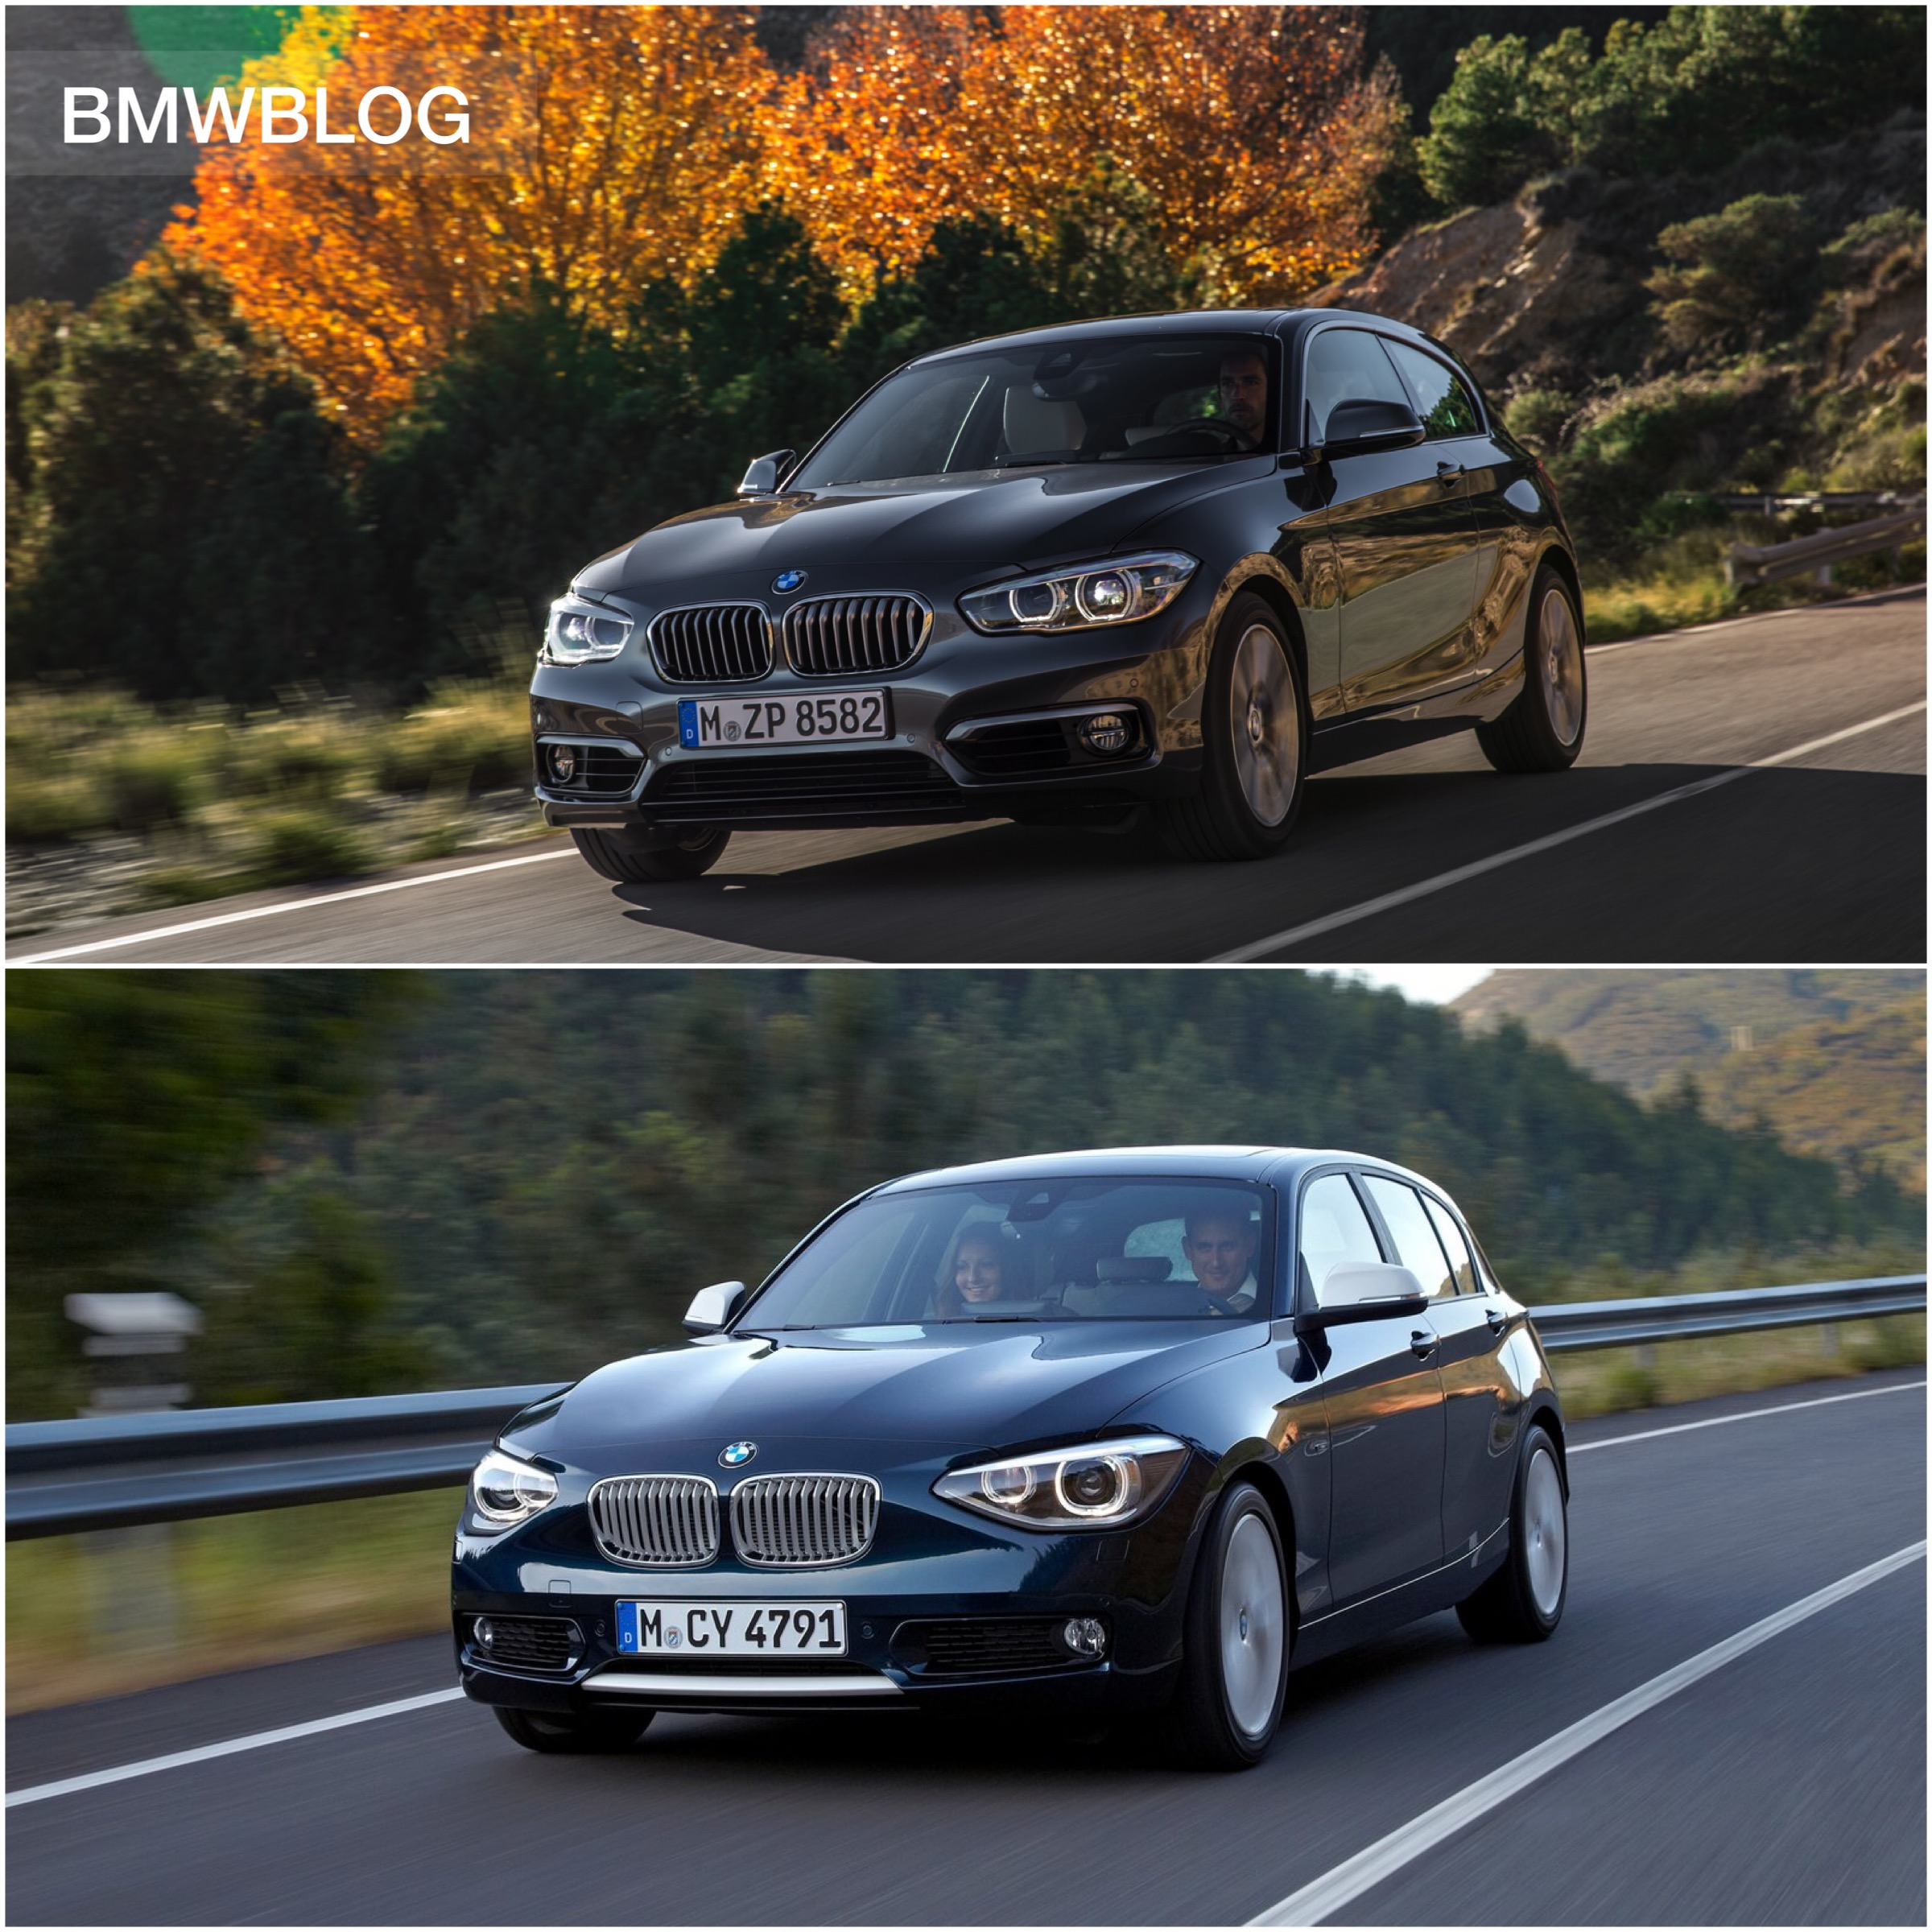 2015 BMW 1 Series Facelift New vs Old Side by Side parison